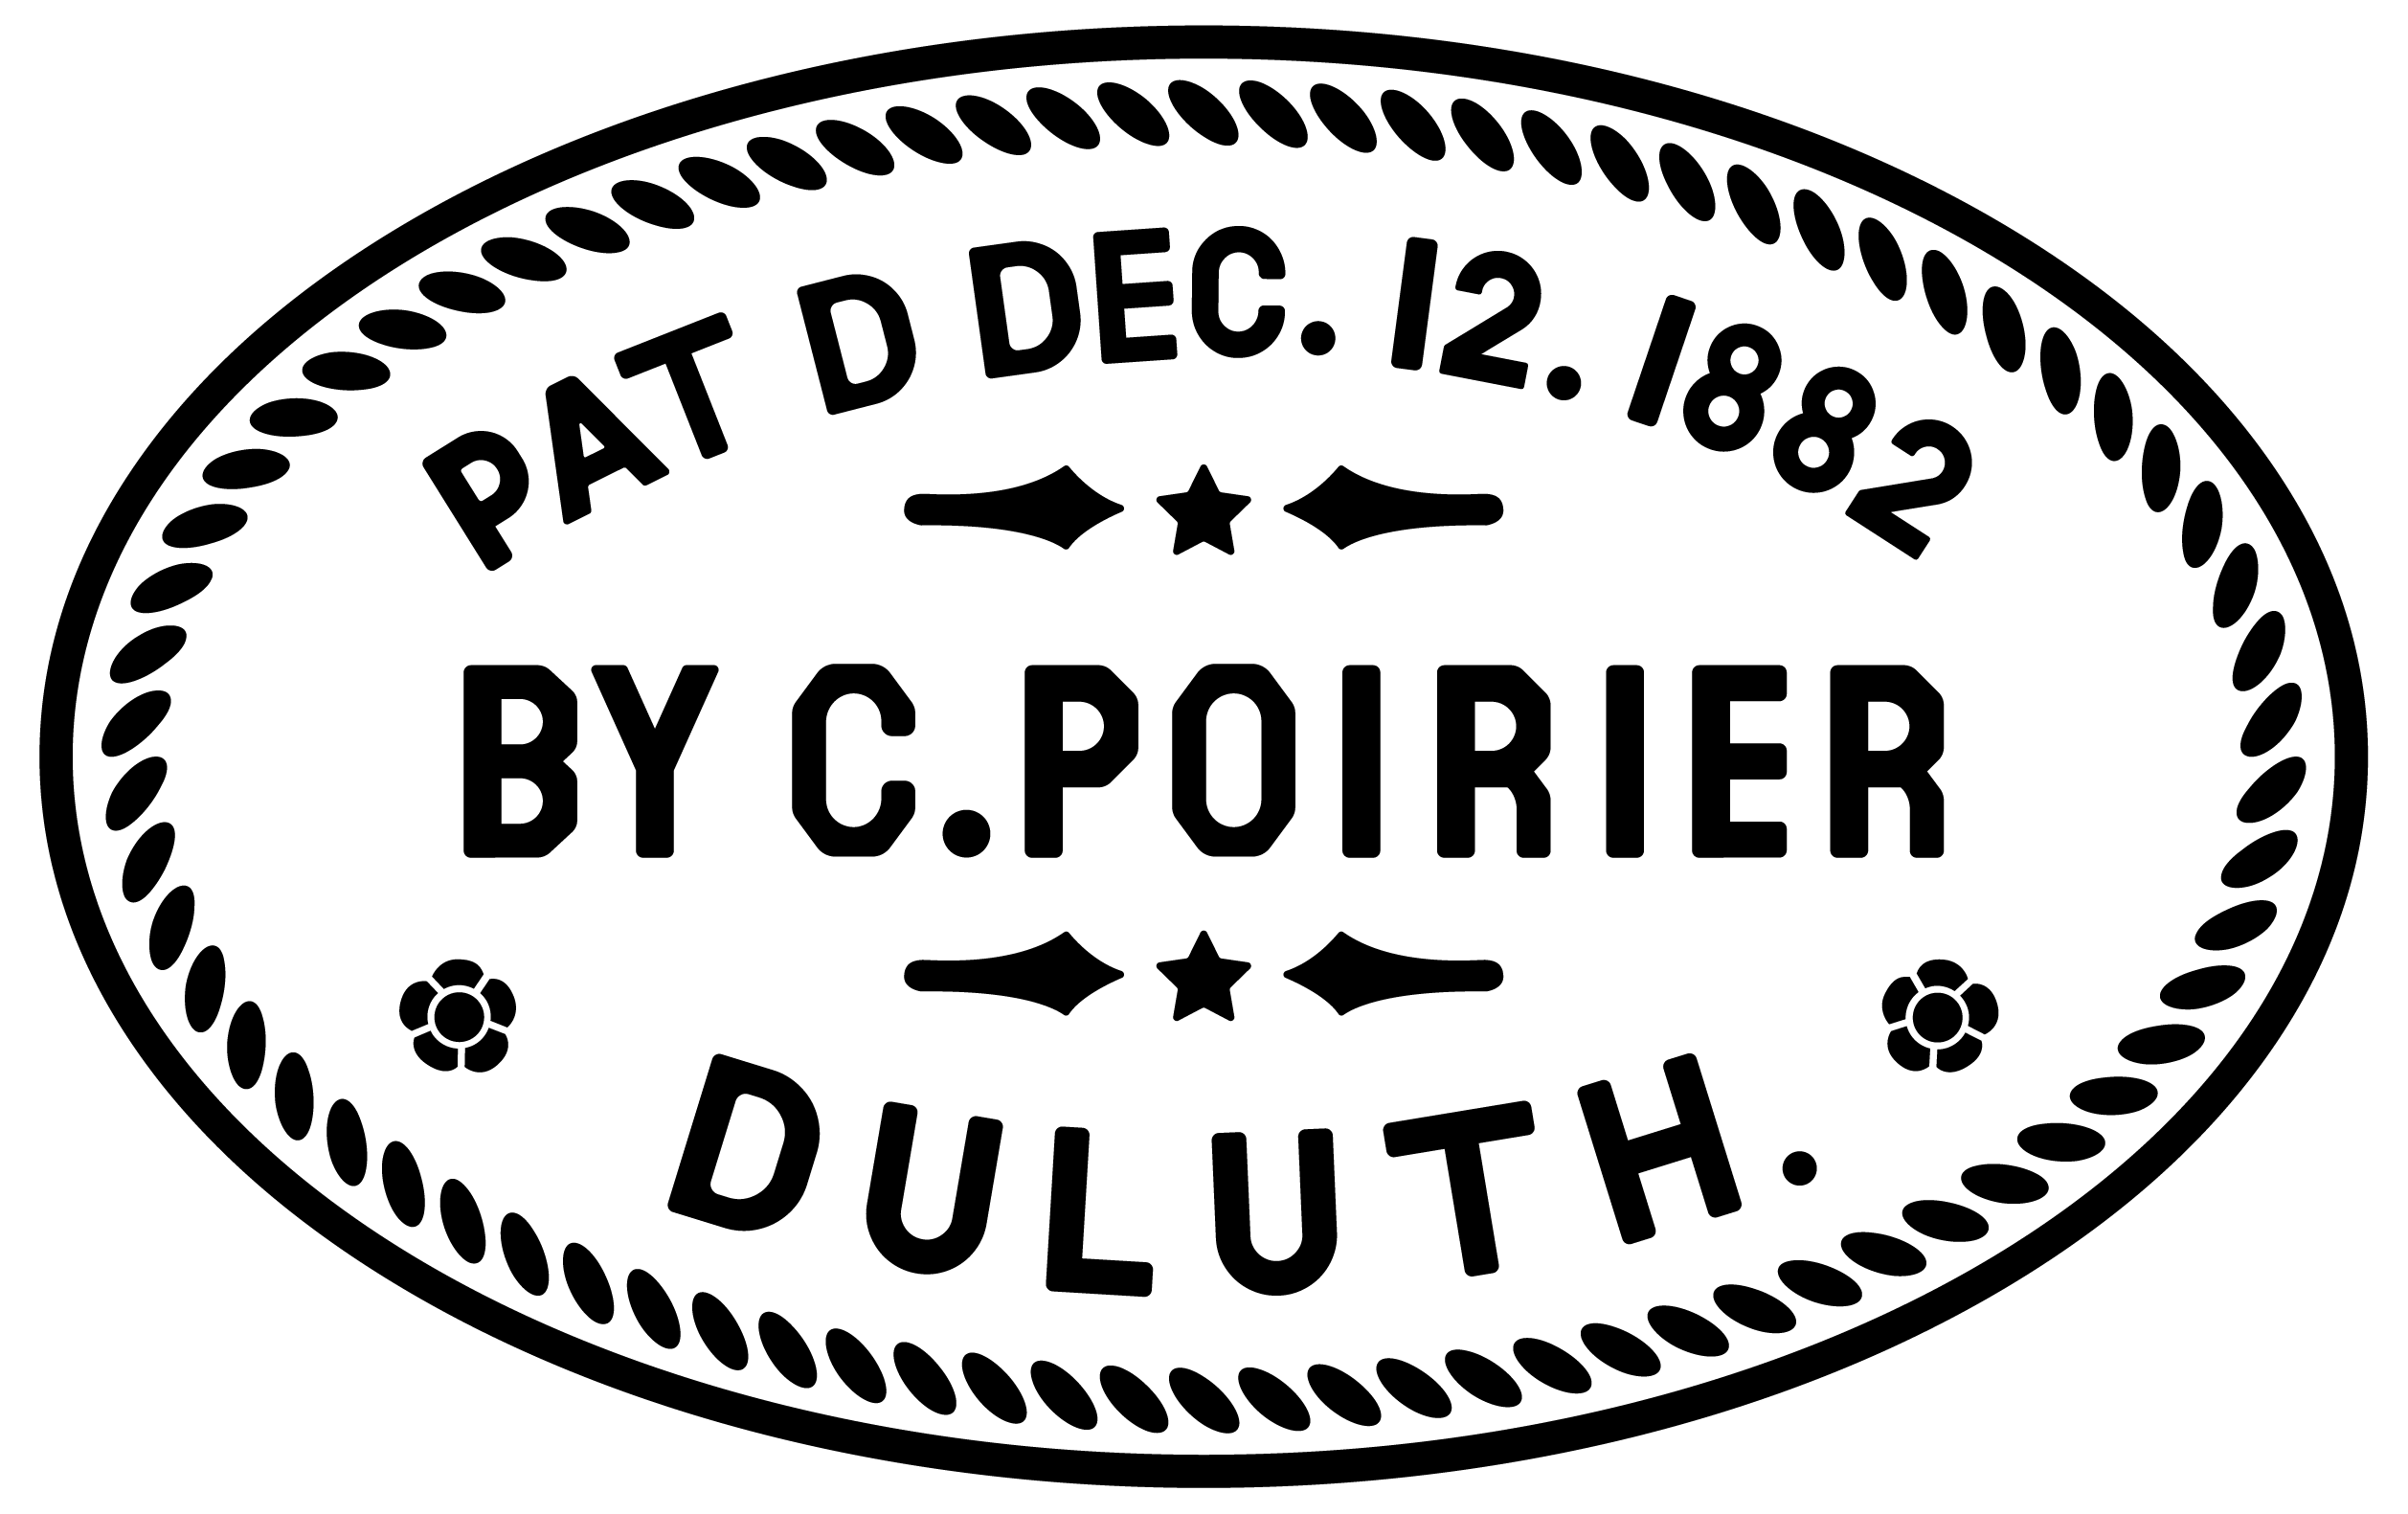 Duluth Pack By C Poirier